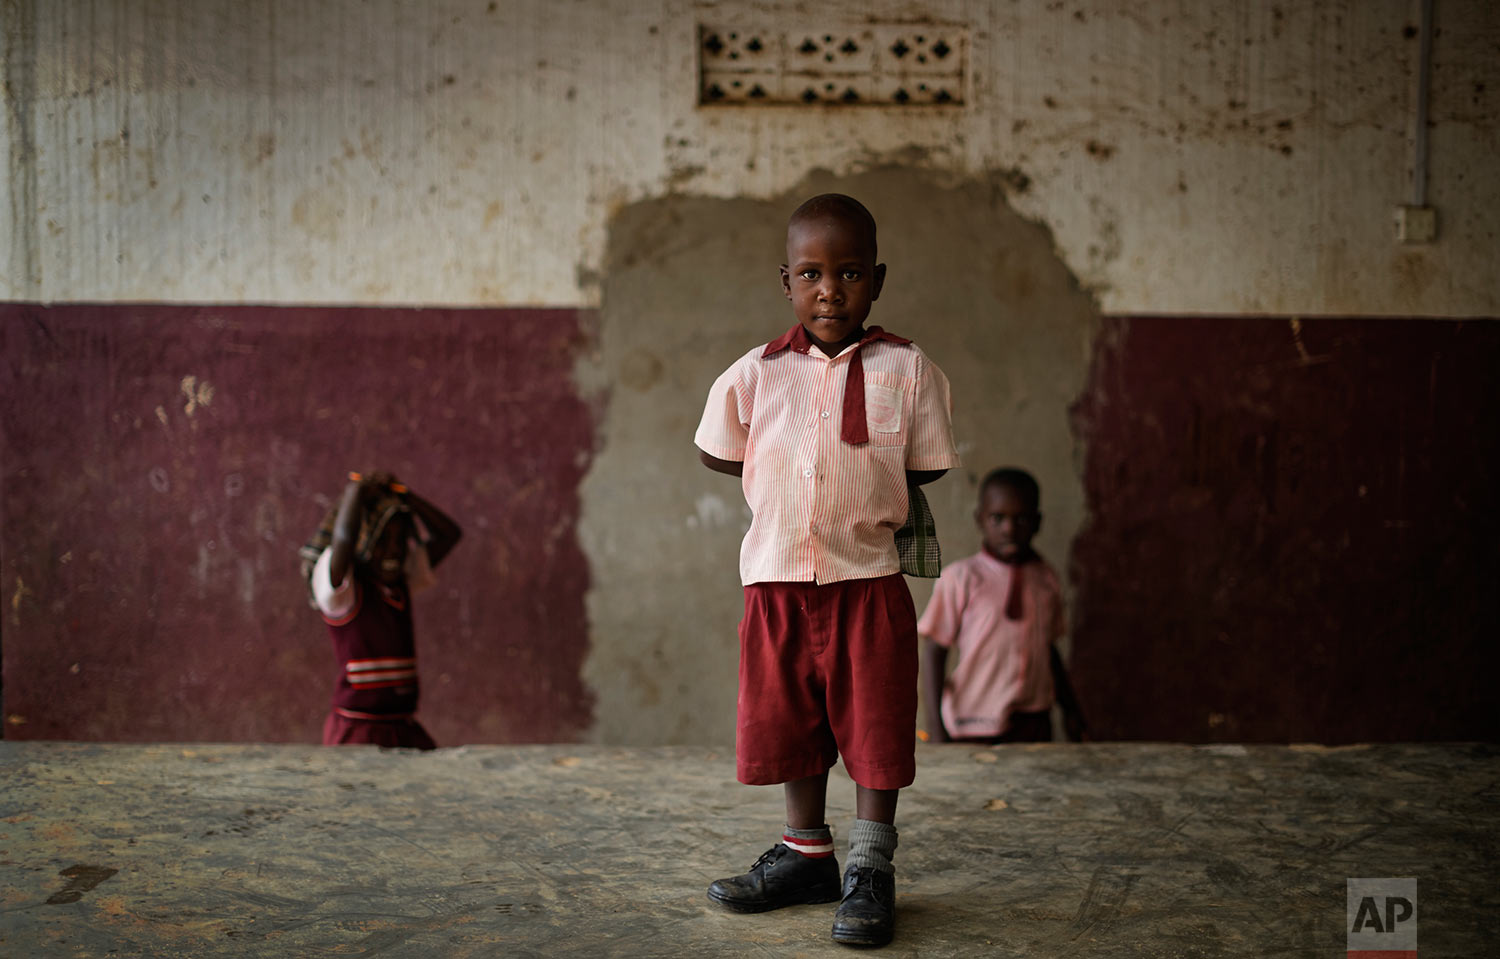 In this Tuesday, May 30, 2017 photo, Keron Sembuya, who teachers believe to be around 4 or 5 years old, stands for a photograph at the Mpugwe Parents Junior School which he attends in Masaka, Uganda. (AP Photo/Ben Curtis)